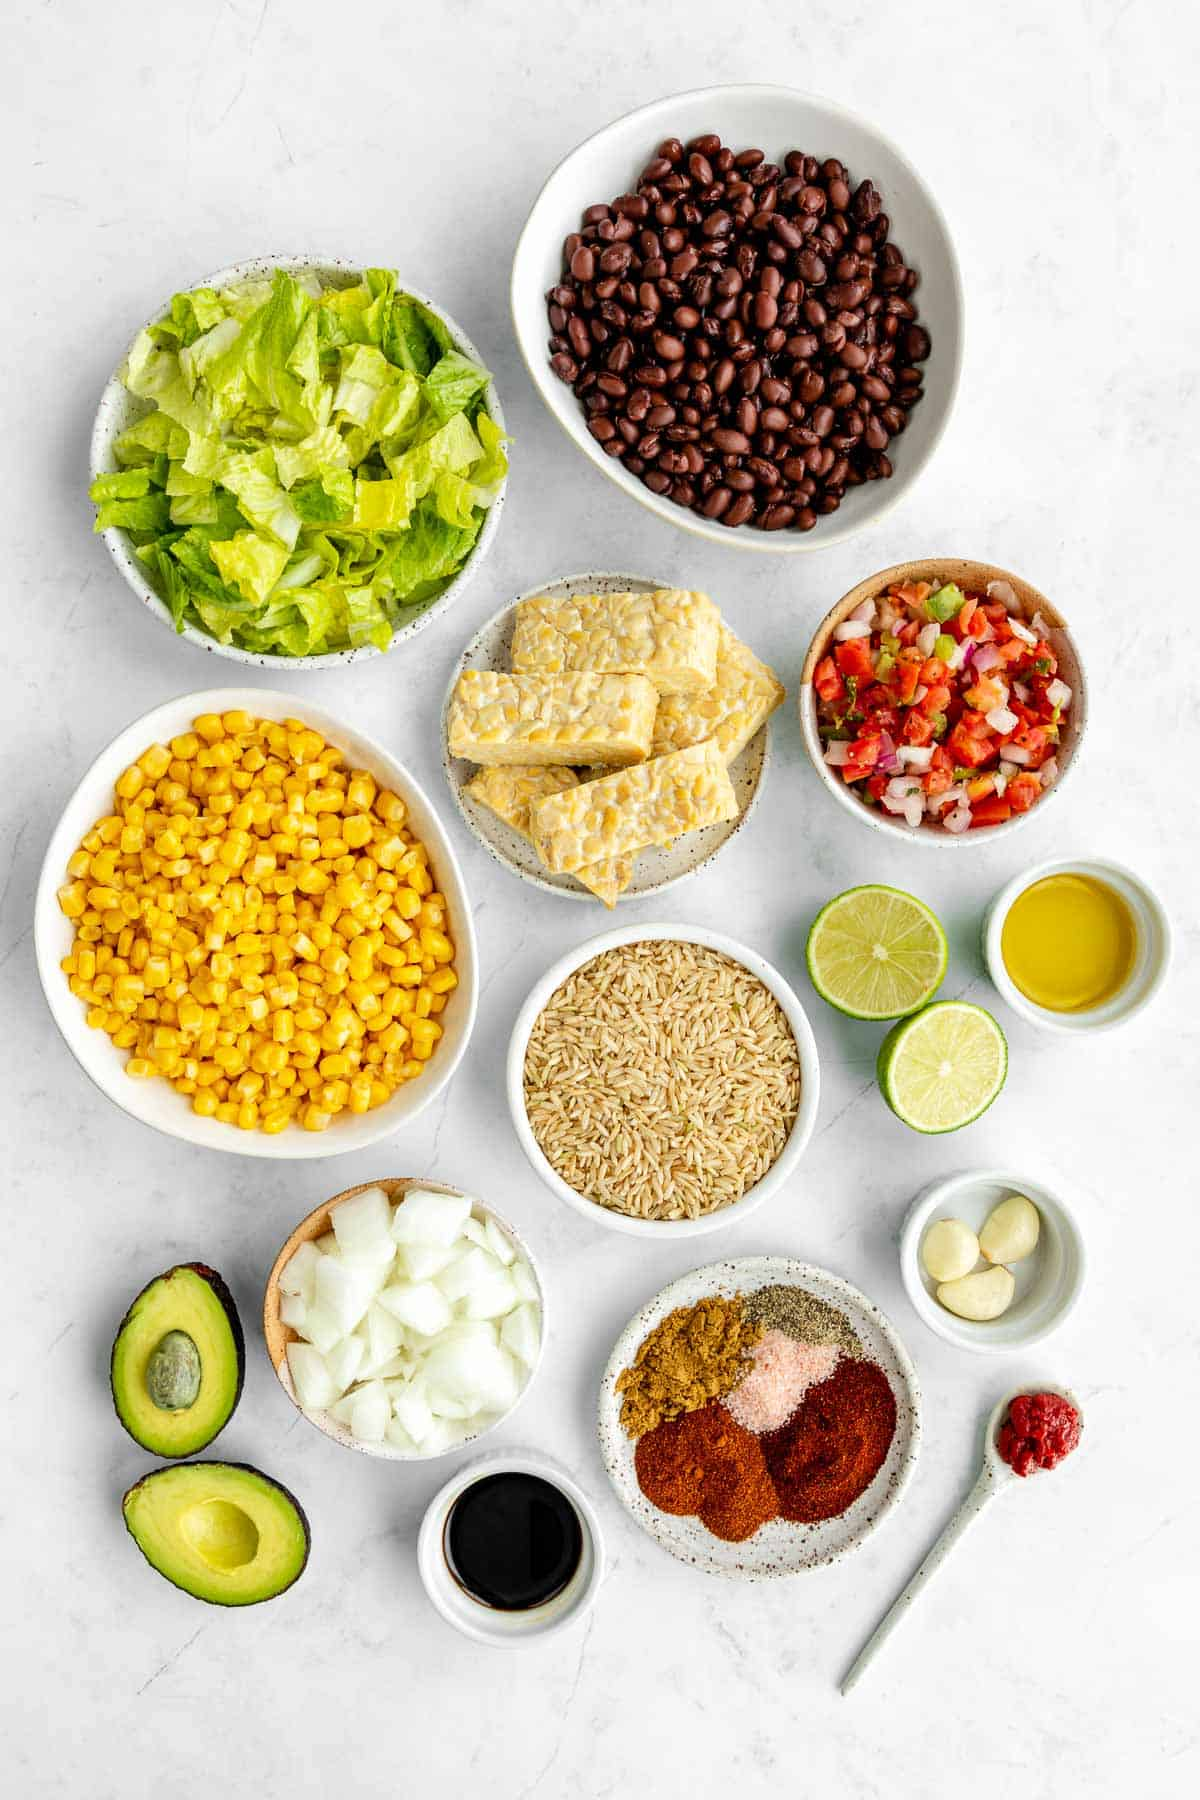 bowls of ingredients for a vegan tempeh burrito bowl, including corn, lettuce, black beans, pico de gallo, onion, avocado, and spices